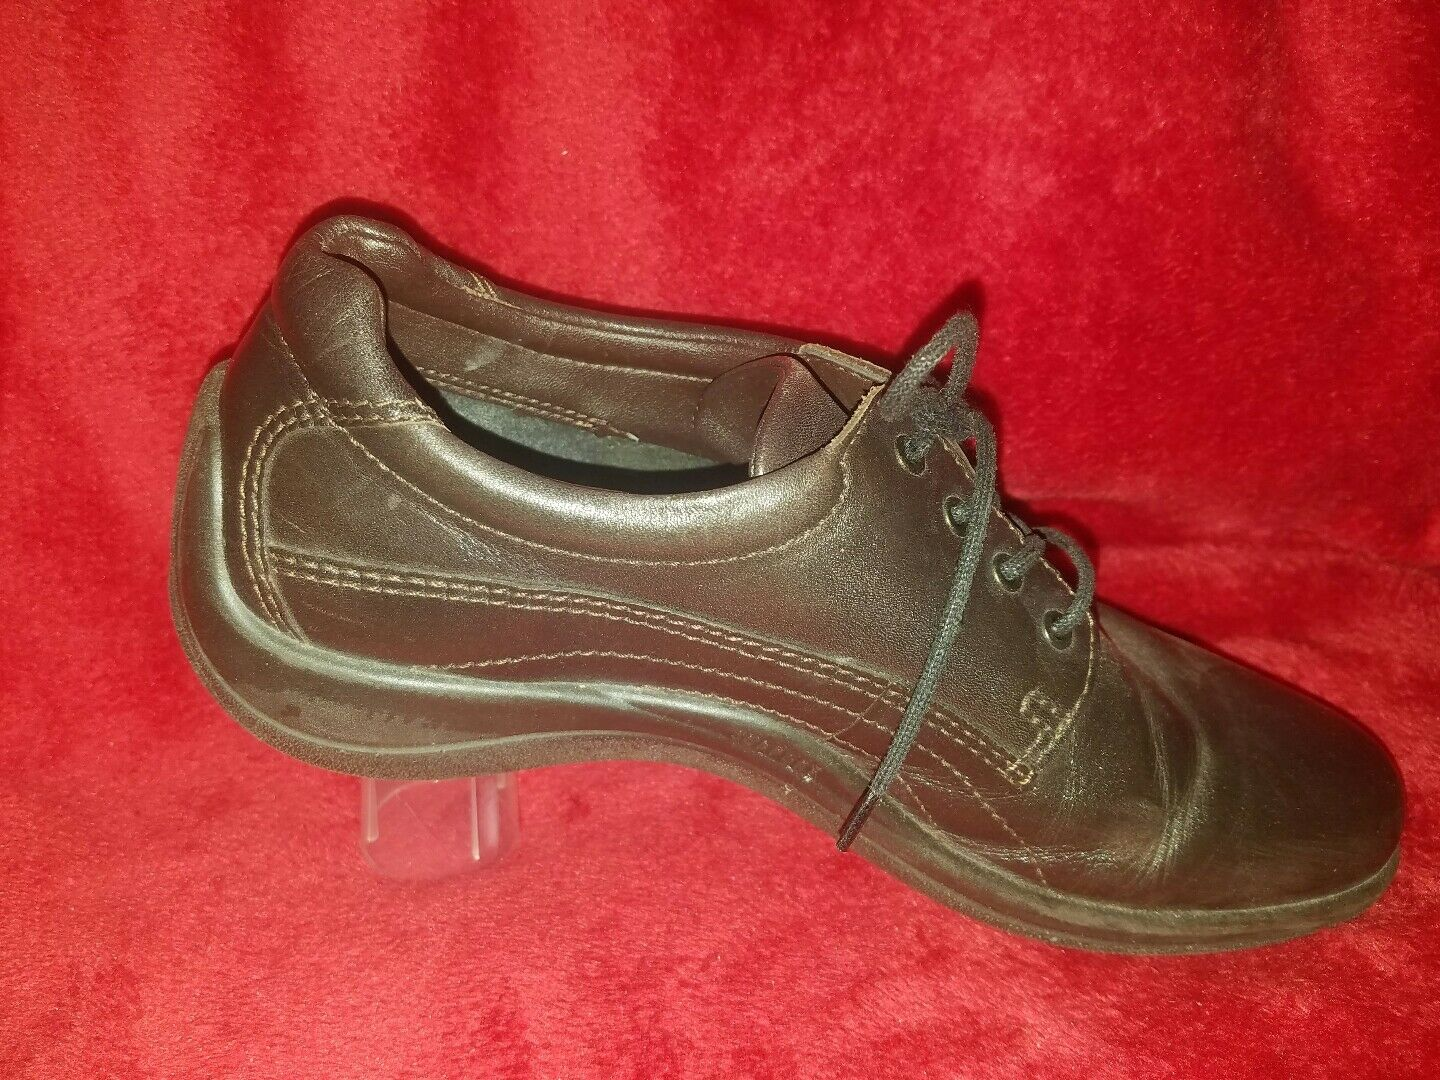 ECCO Dark Brown Leather Lace-Up Oxfords shoes Women's 40 9-9.5, Barely Worn 7